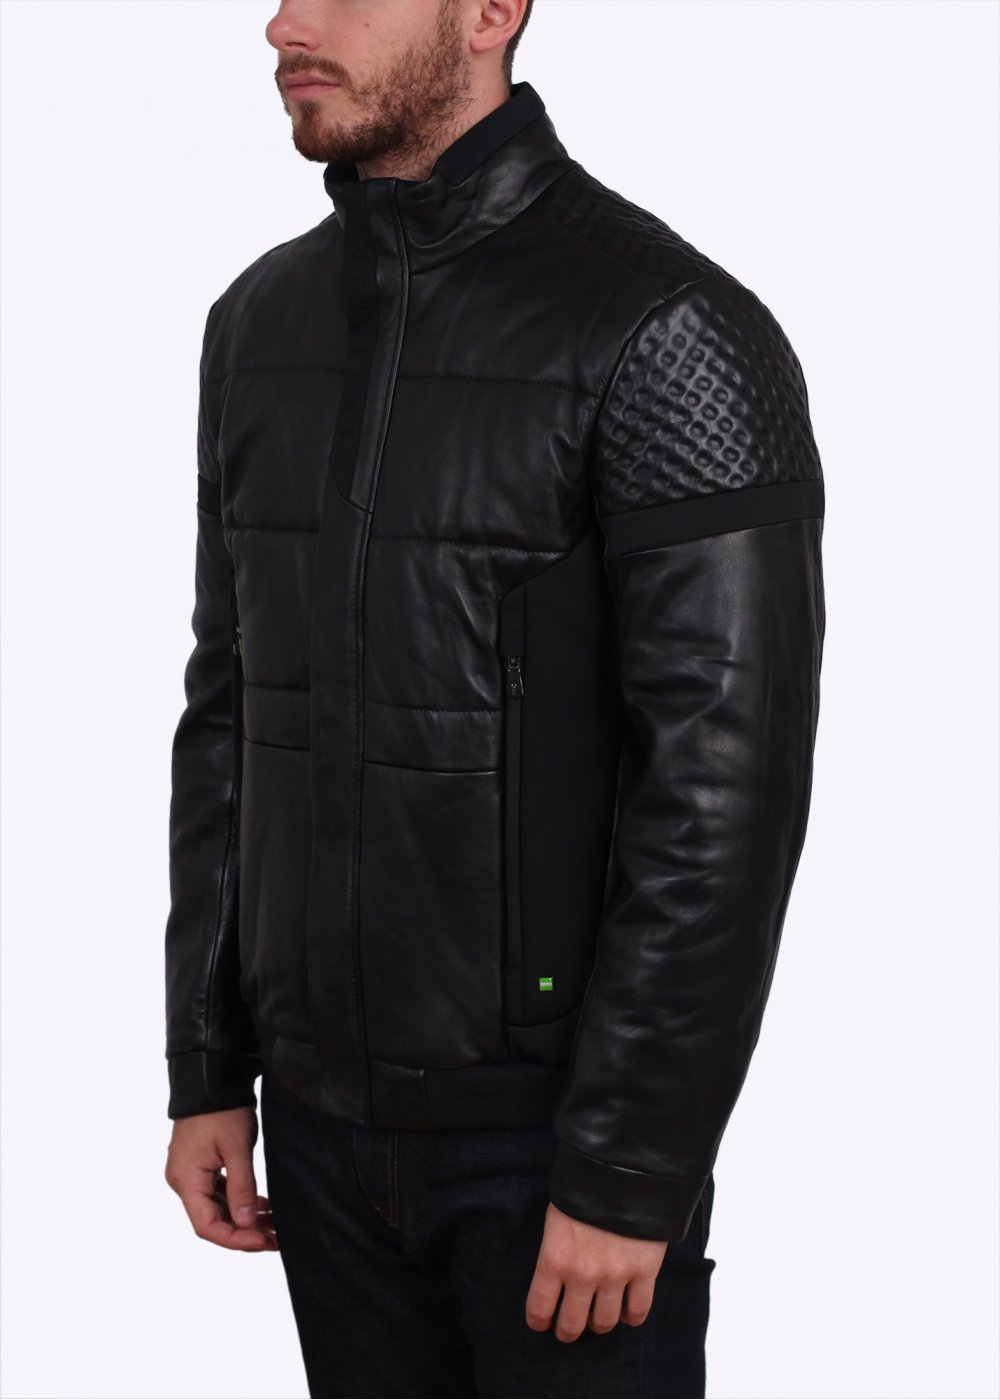 new fashion hugo boss mens jacket coat outerwear male